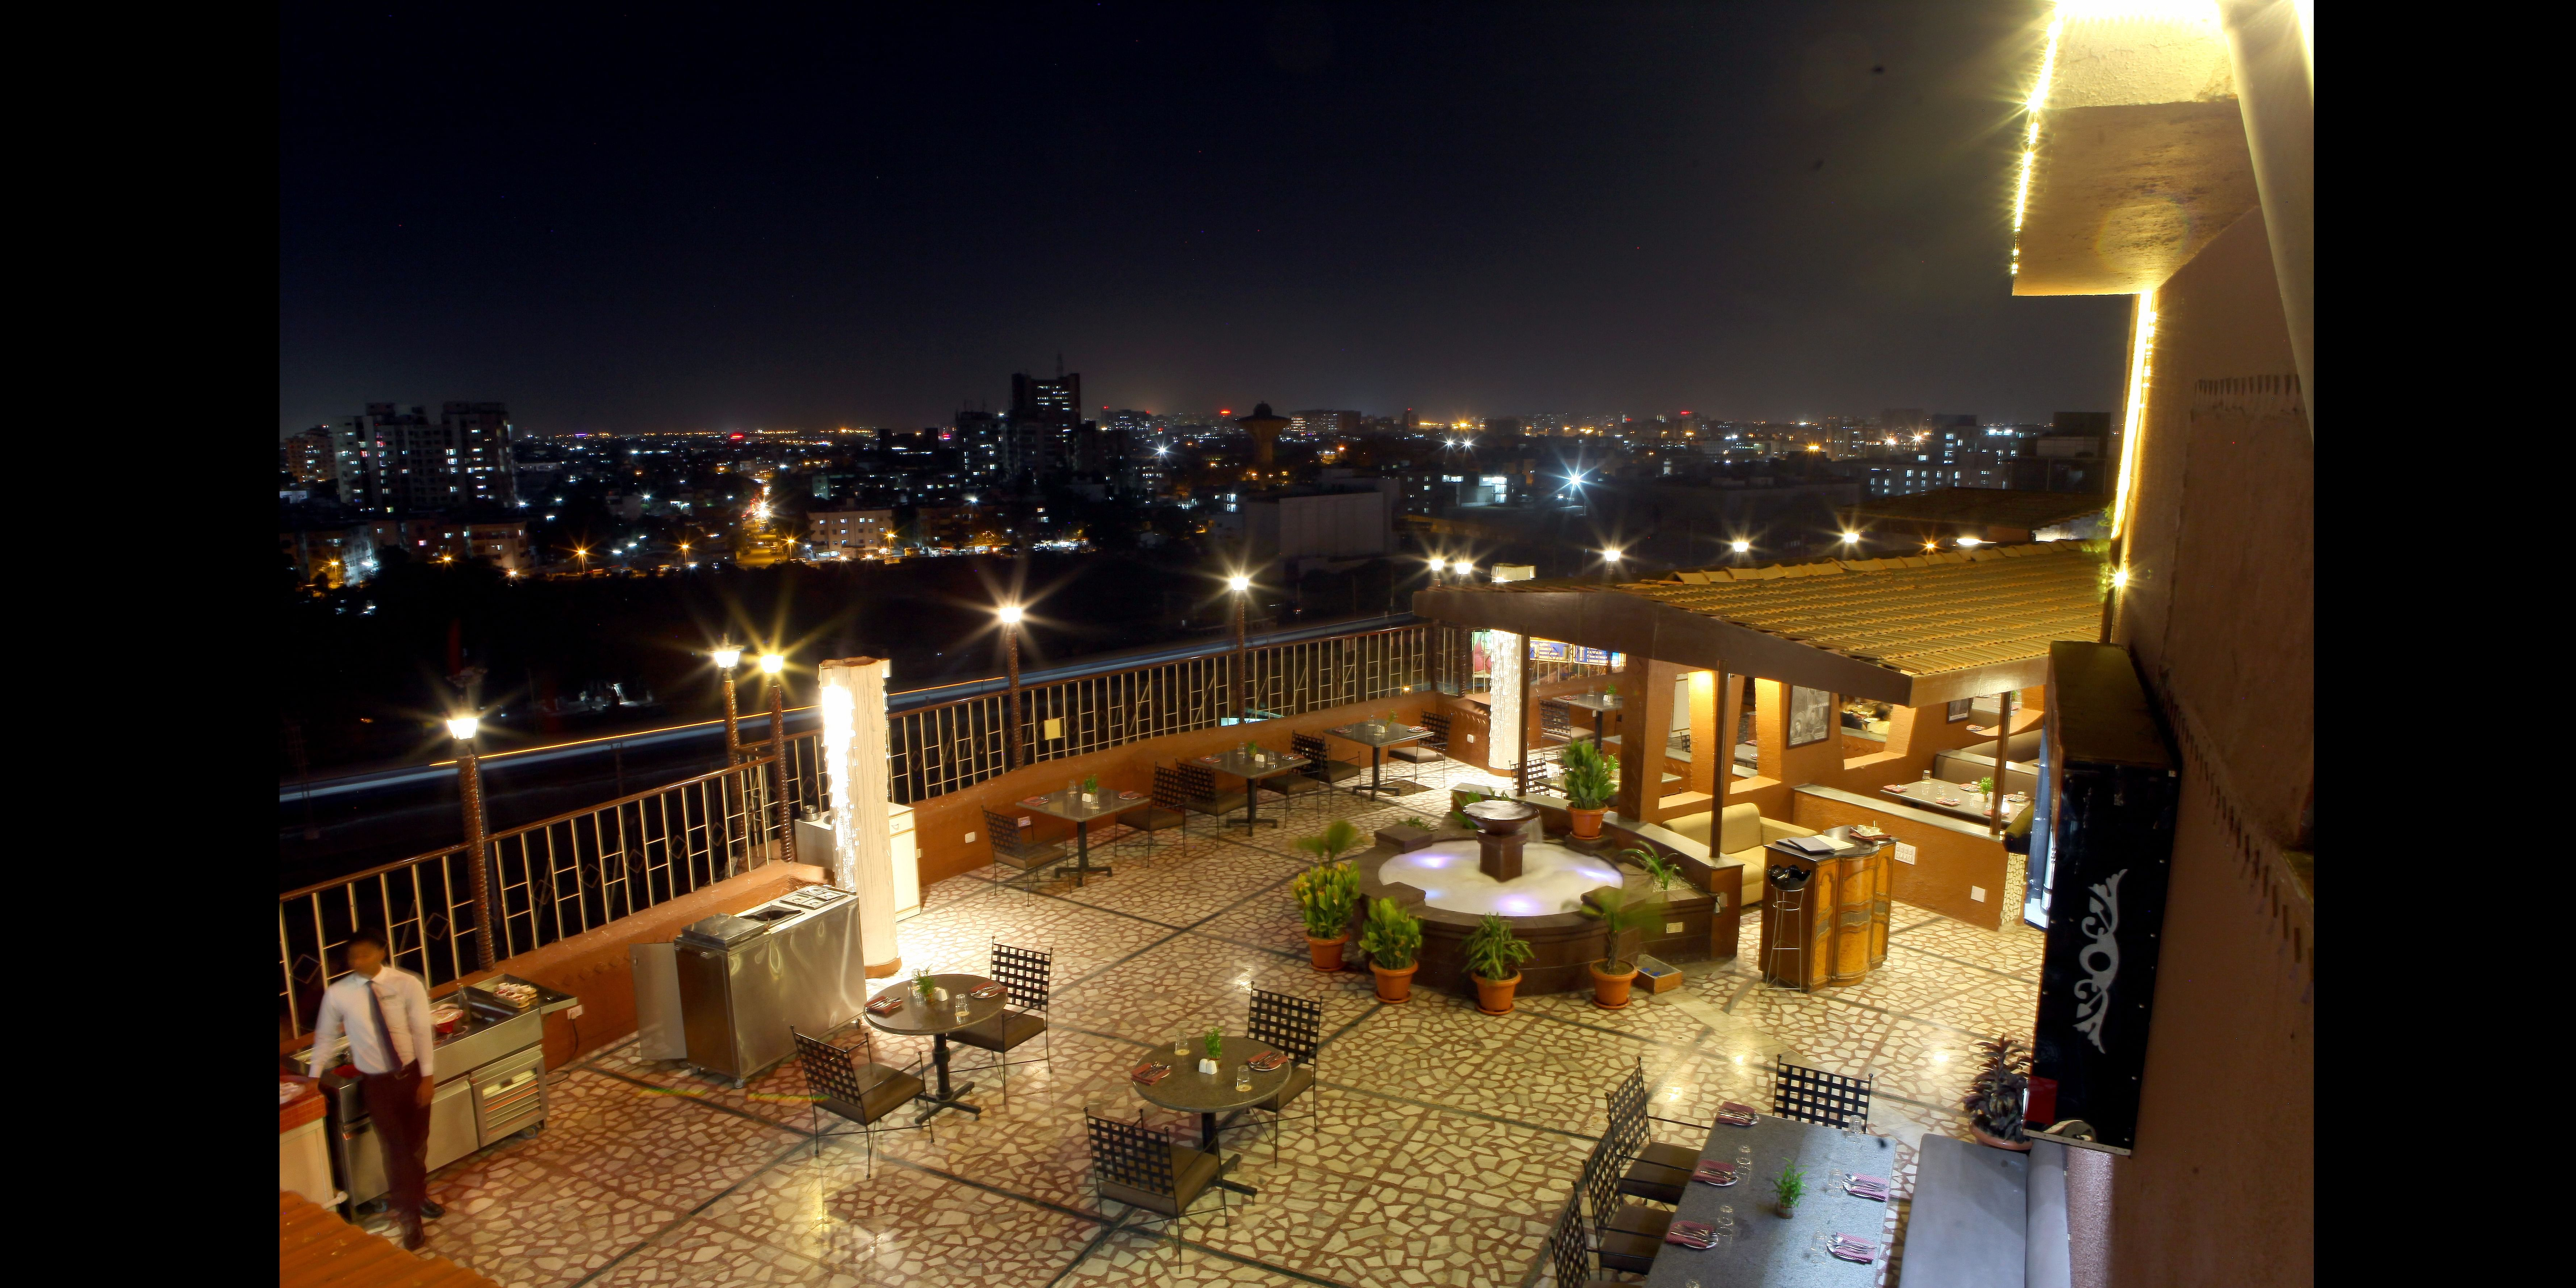 The Lime Tree at Hotel Lords Plaza, Surat